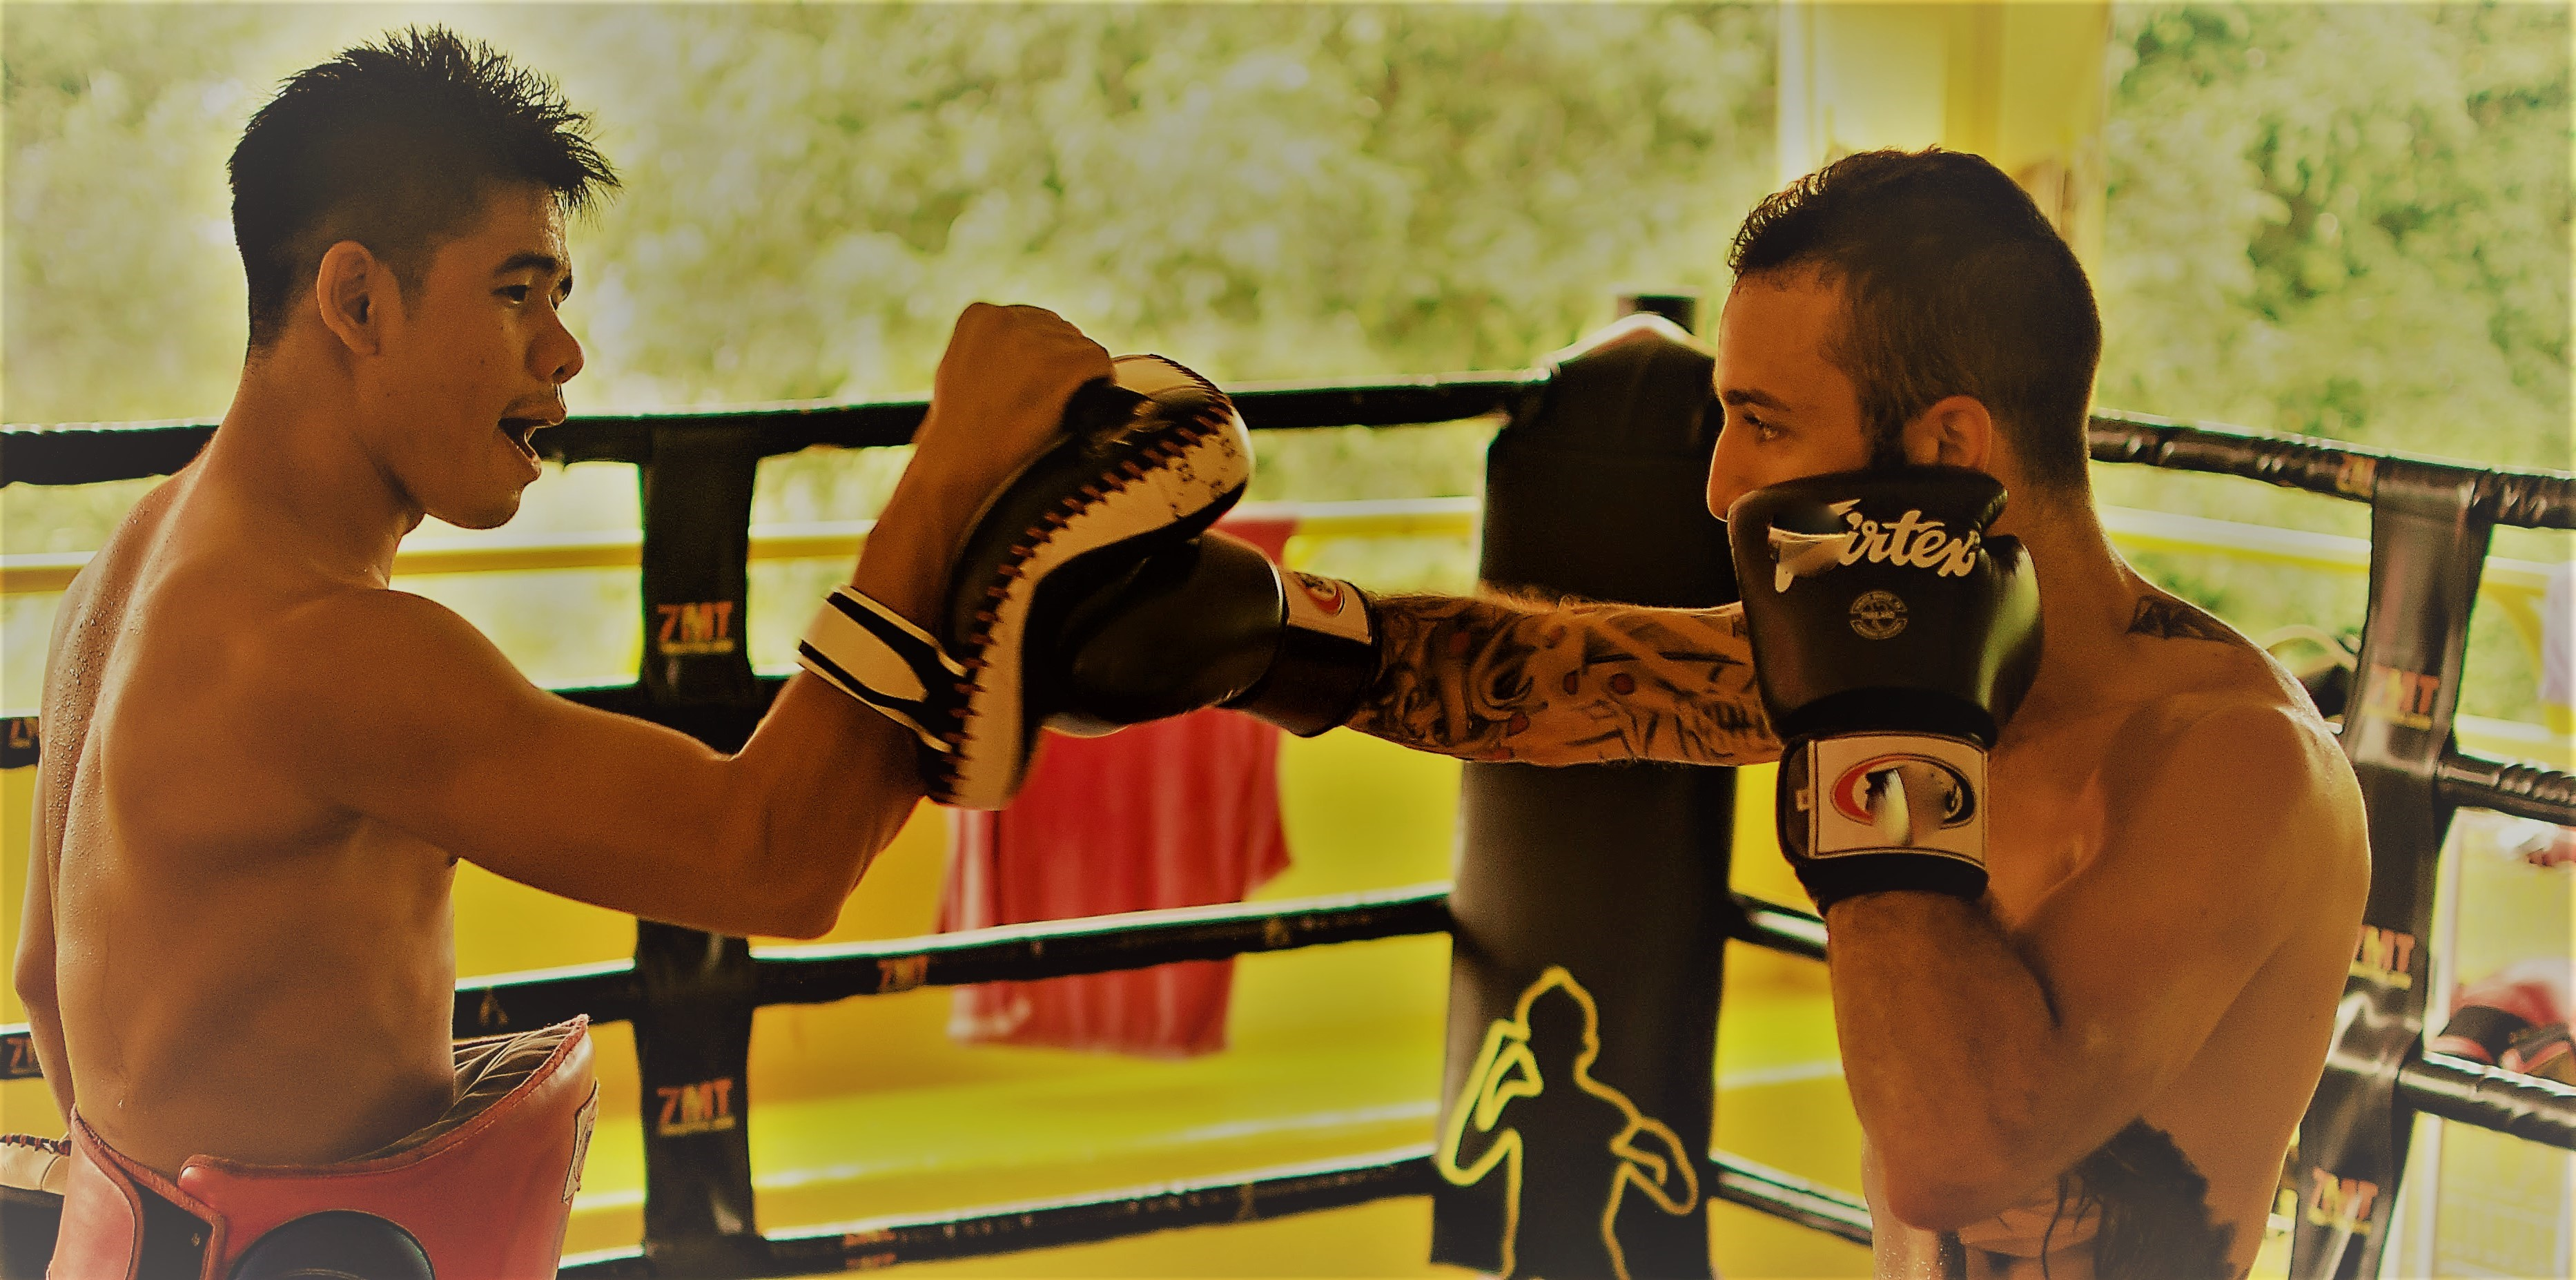 Muay Thai Training Camp In Thailand For Better Life